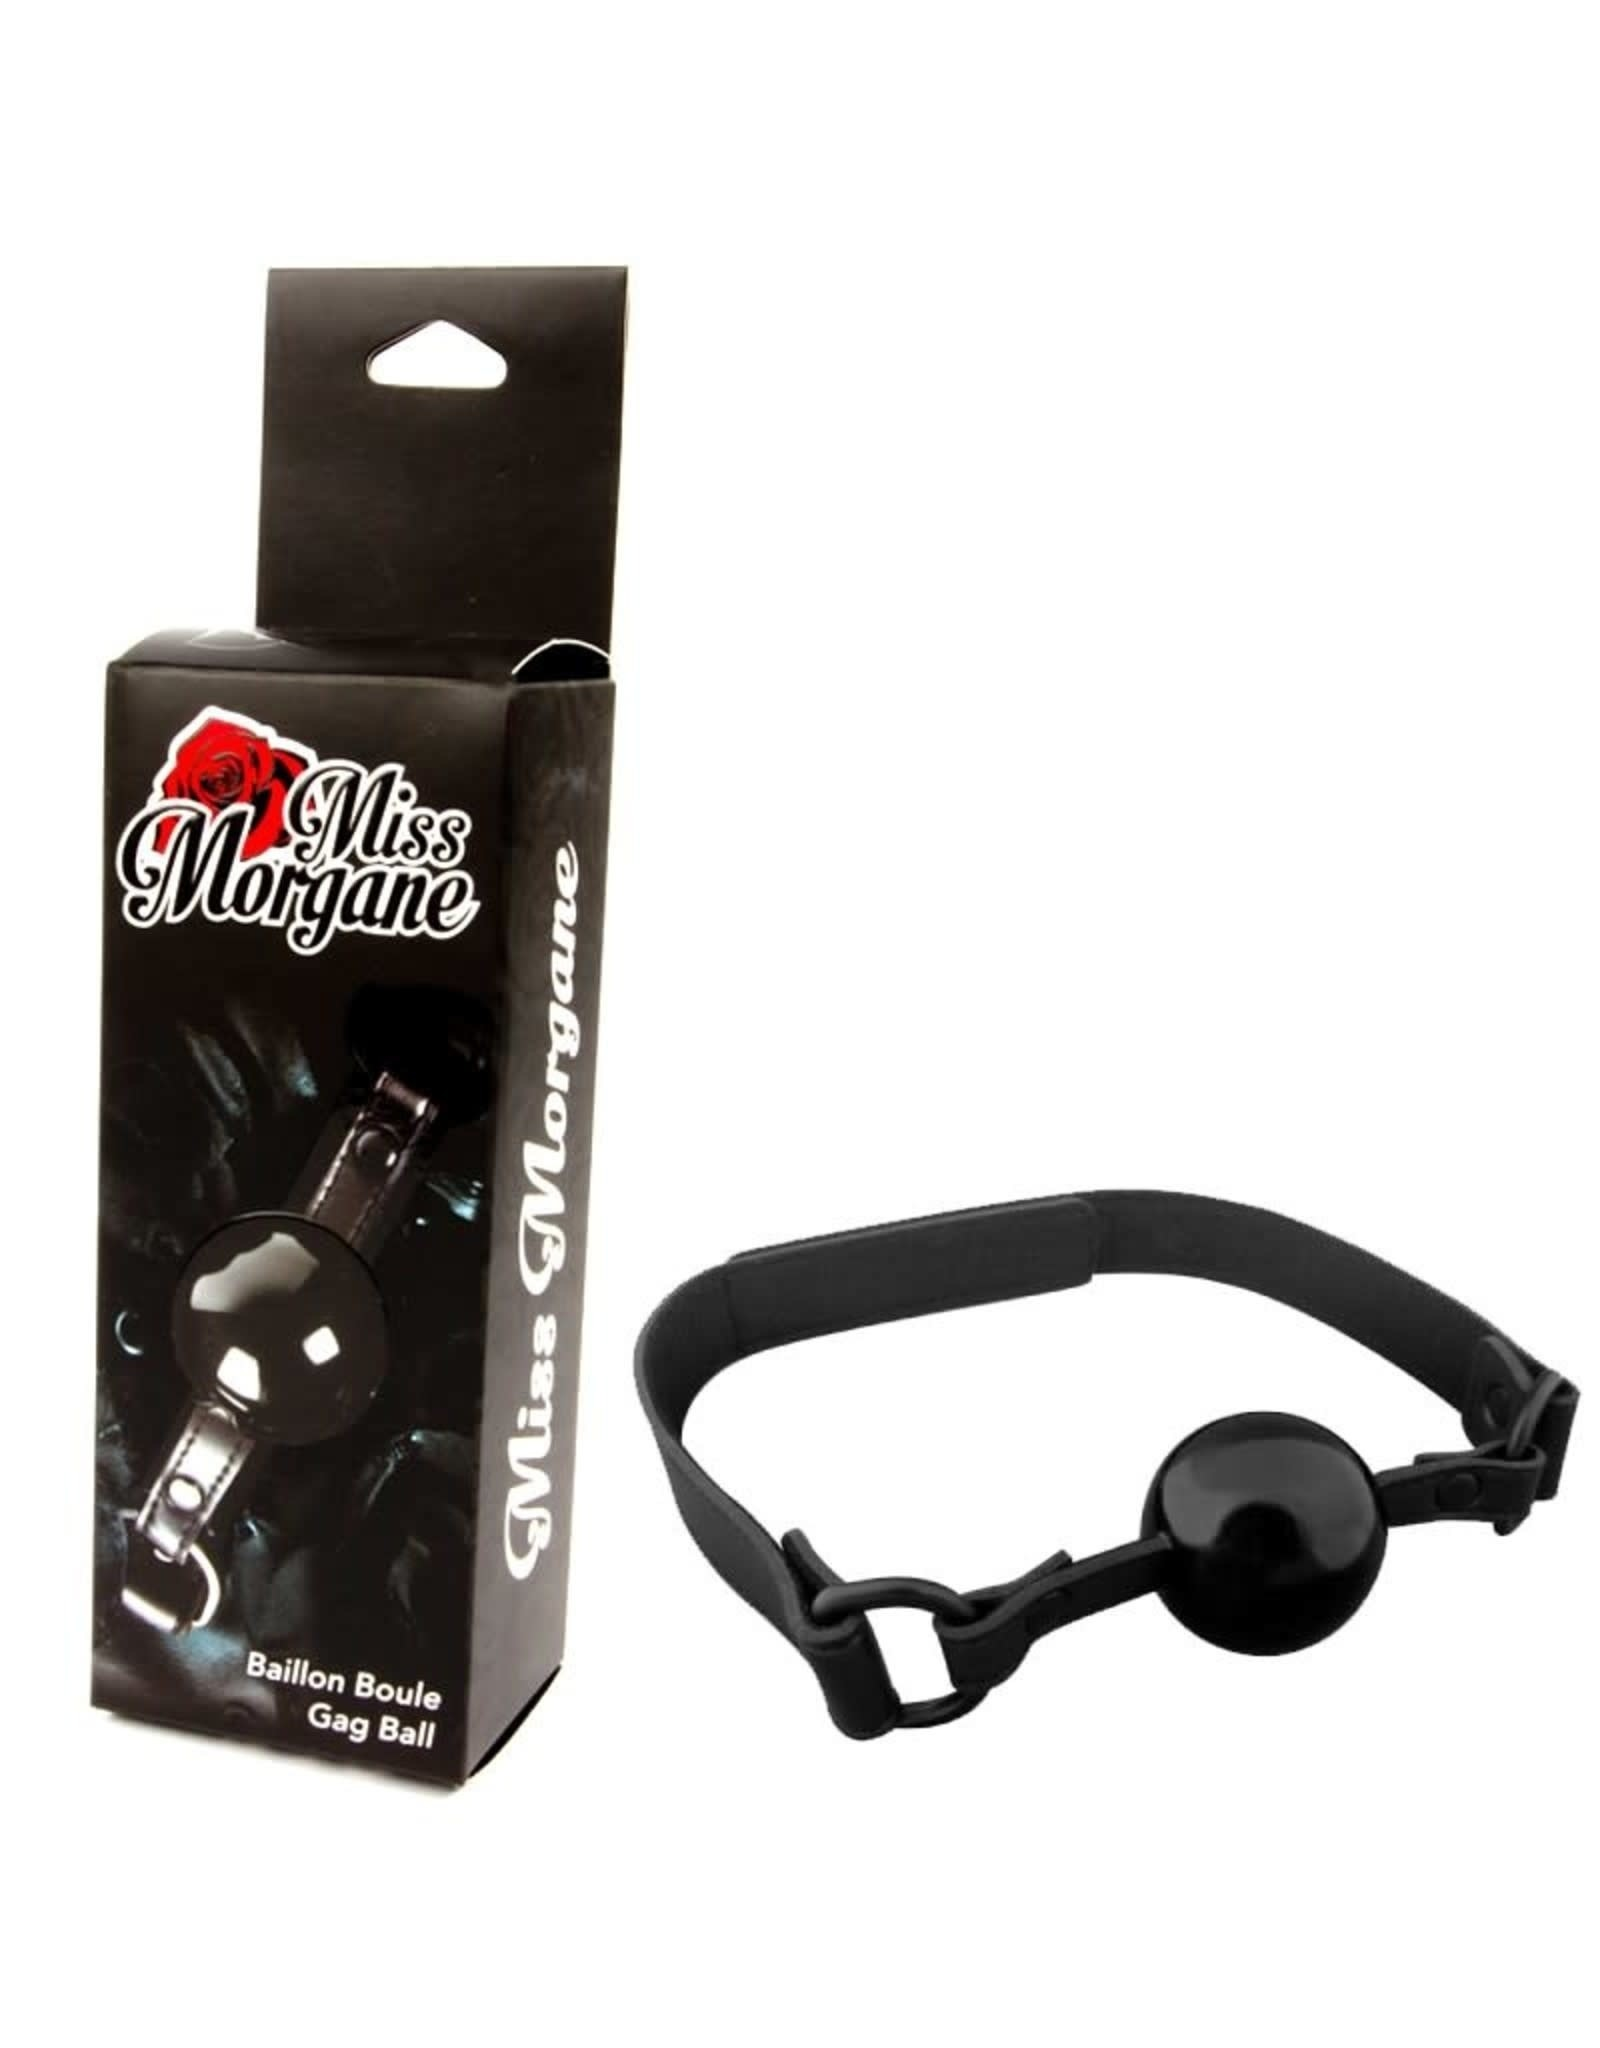 MISS MORGANE - SILICONE BALL GAG - BLACK